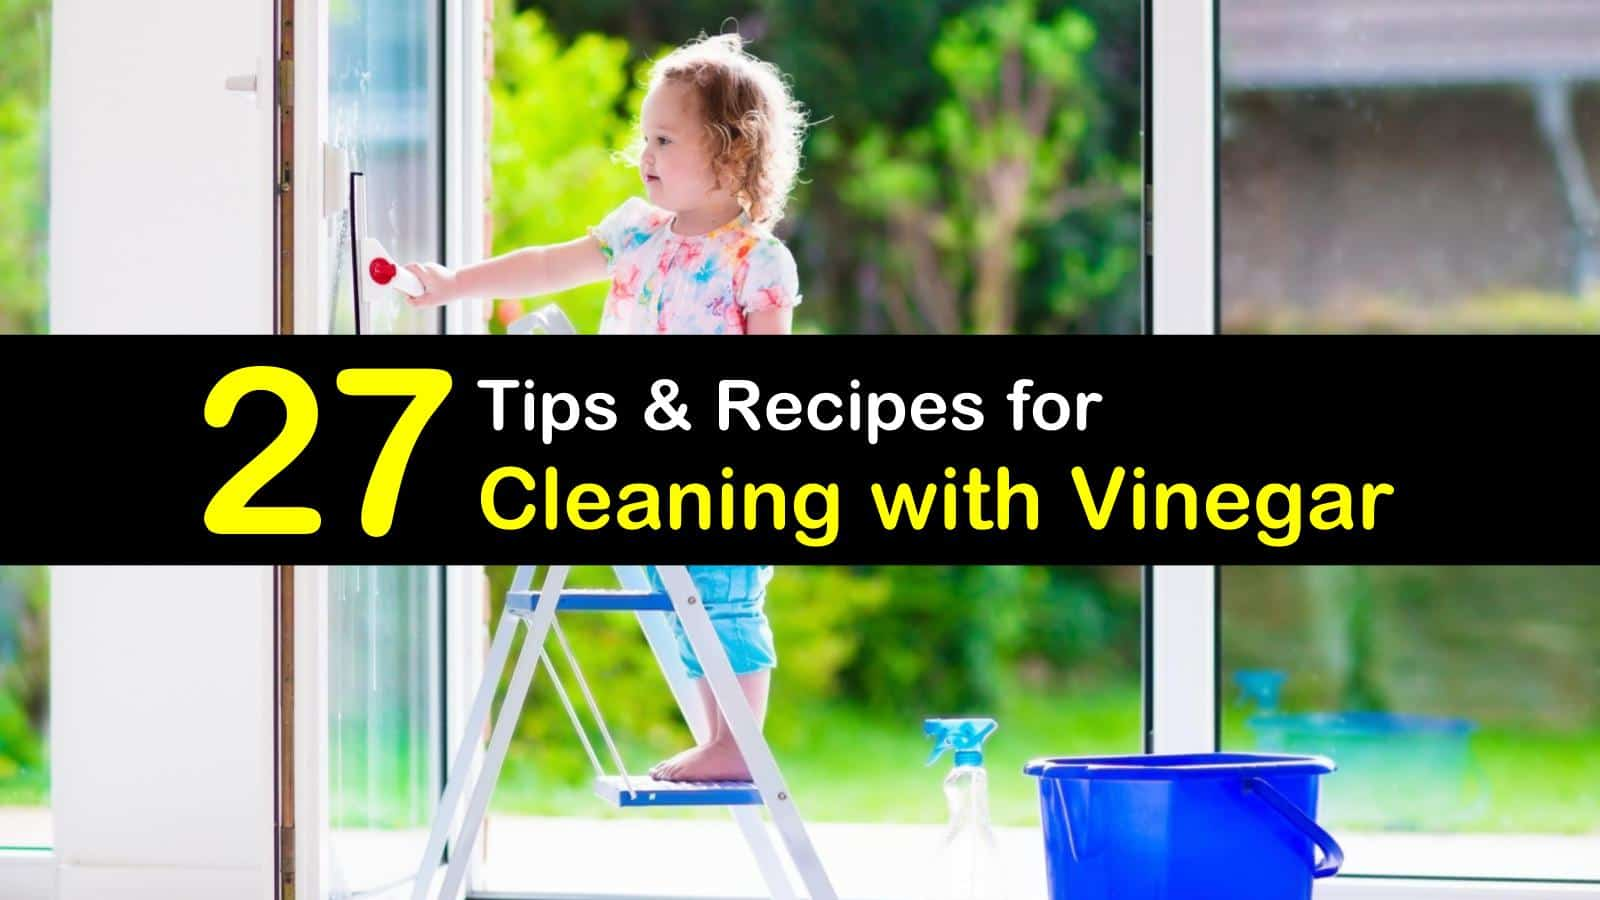 cleaning with vinegar titleimg1